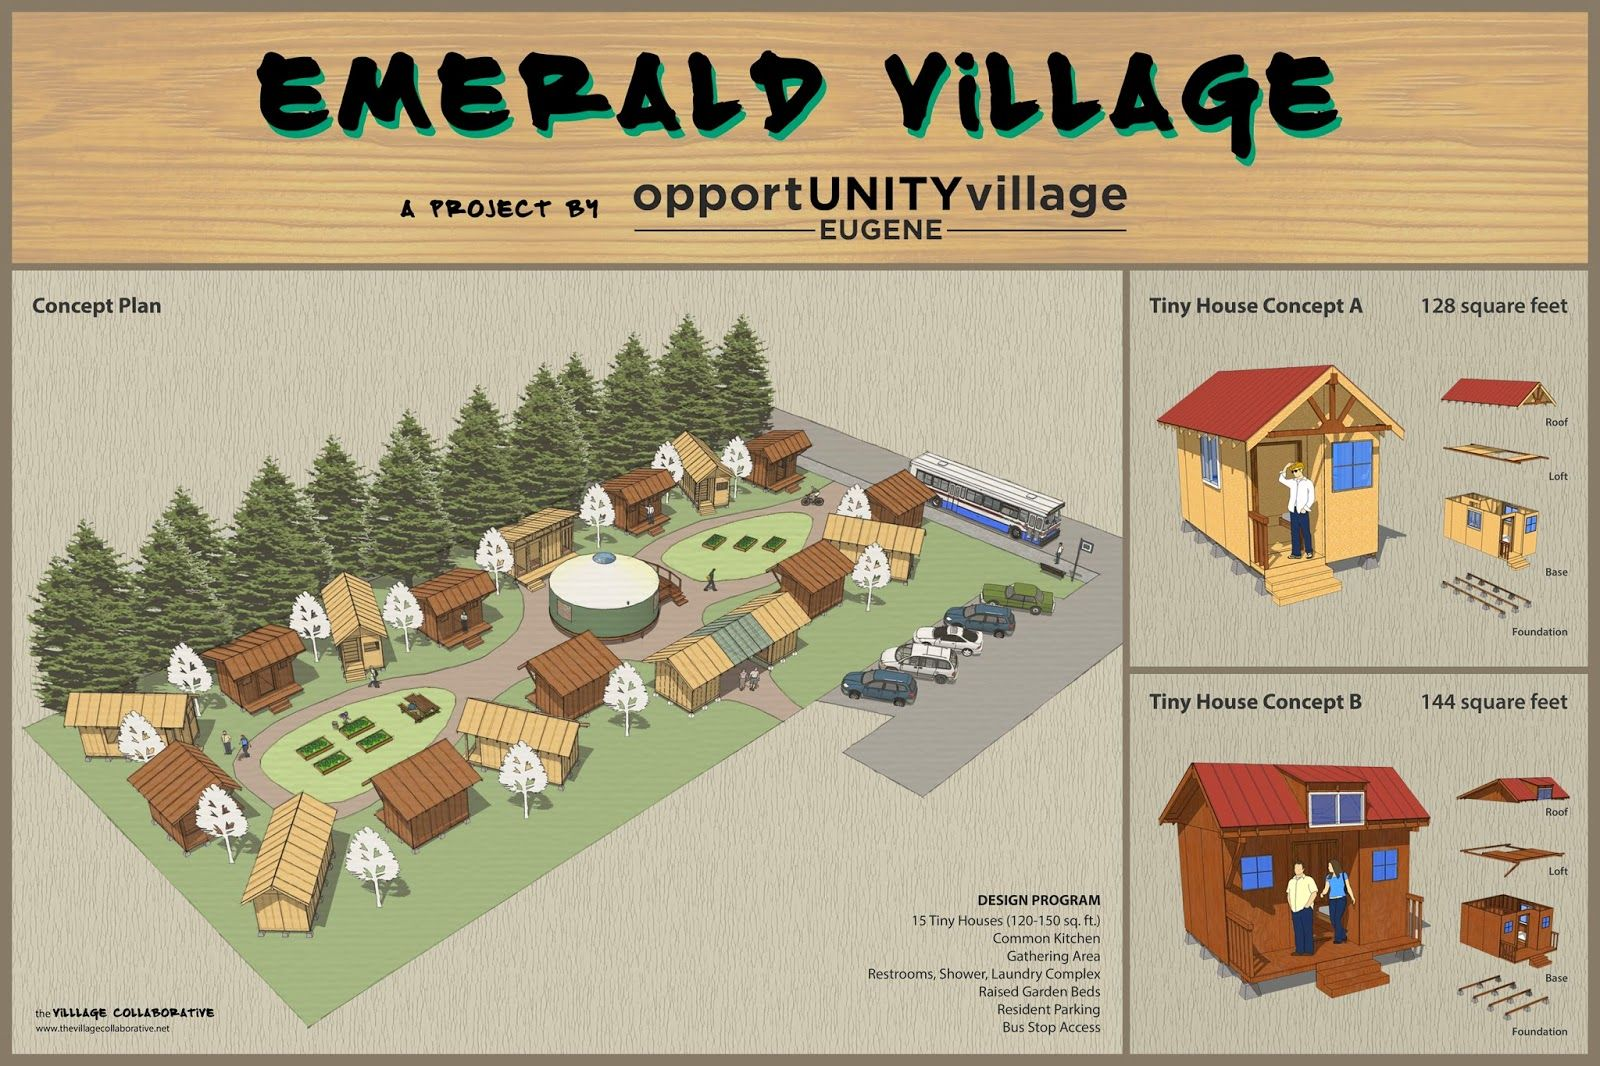 transitional village model timber trails enabling cabin transitional village model timber trails enabling cabin cottage and tiny house builders with resources for fast efficient and affordable pinteres